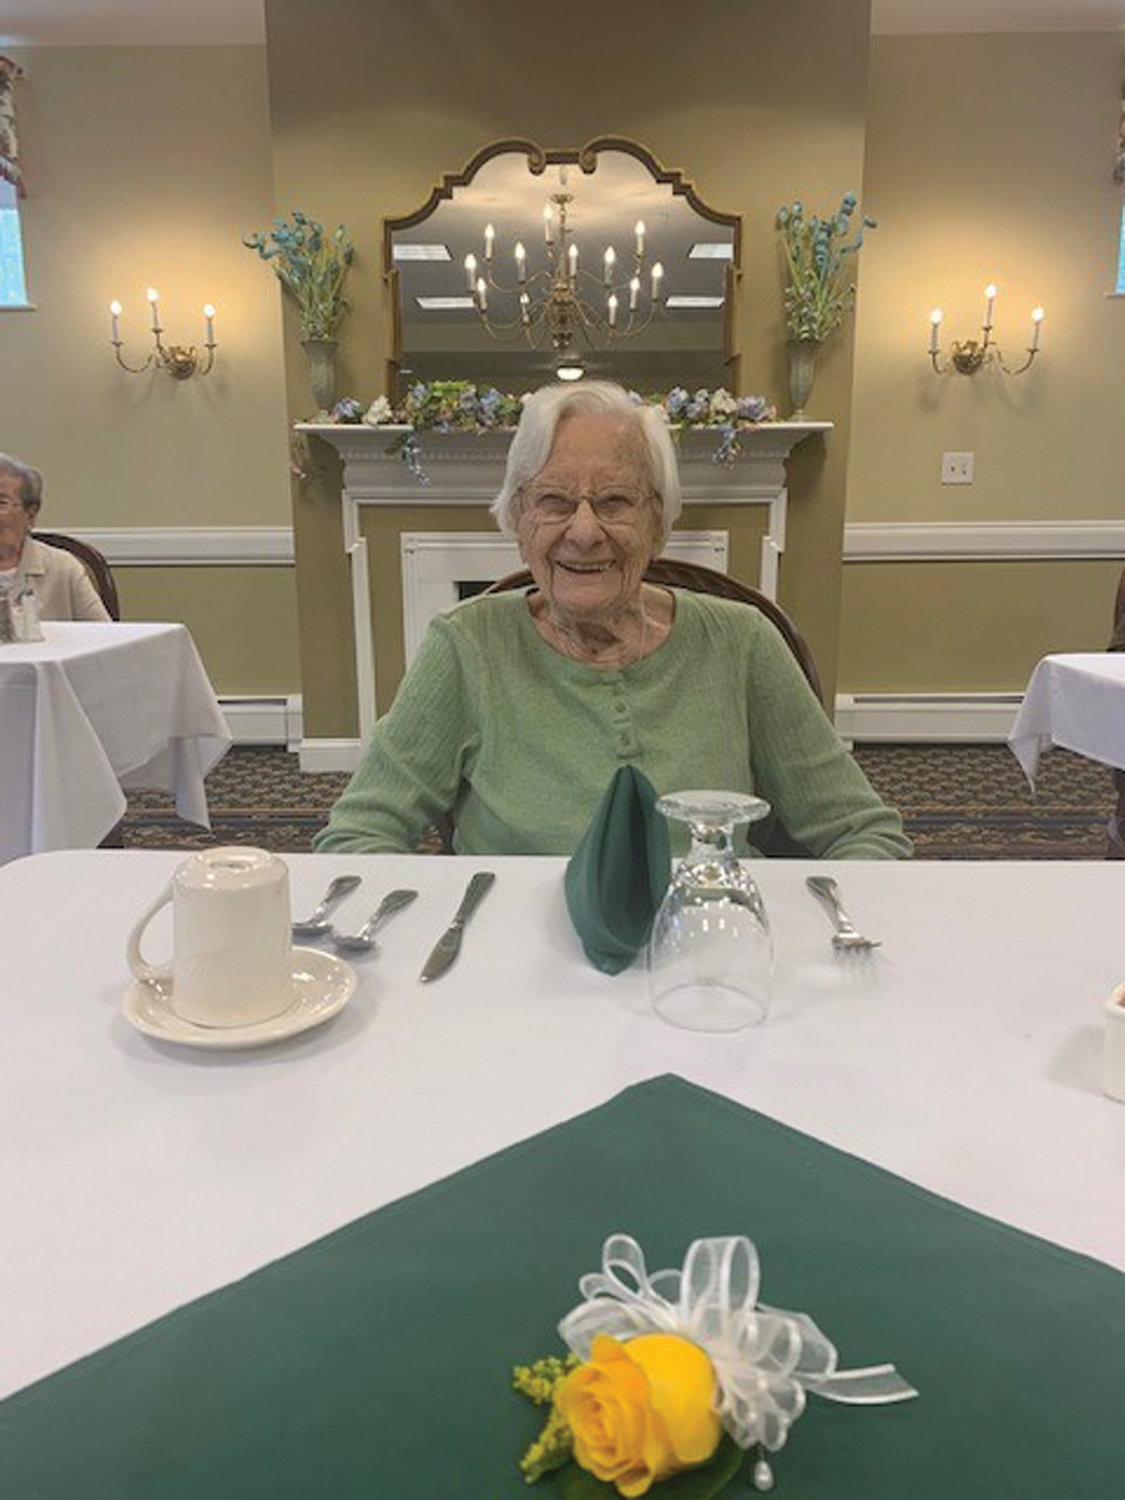 'LIVE OUR LIFE OUR WAY': Nancy Croce, 103, was among the beaming centenarians honored during a recent brunch at The Bridge at Cherry Hill.